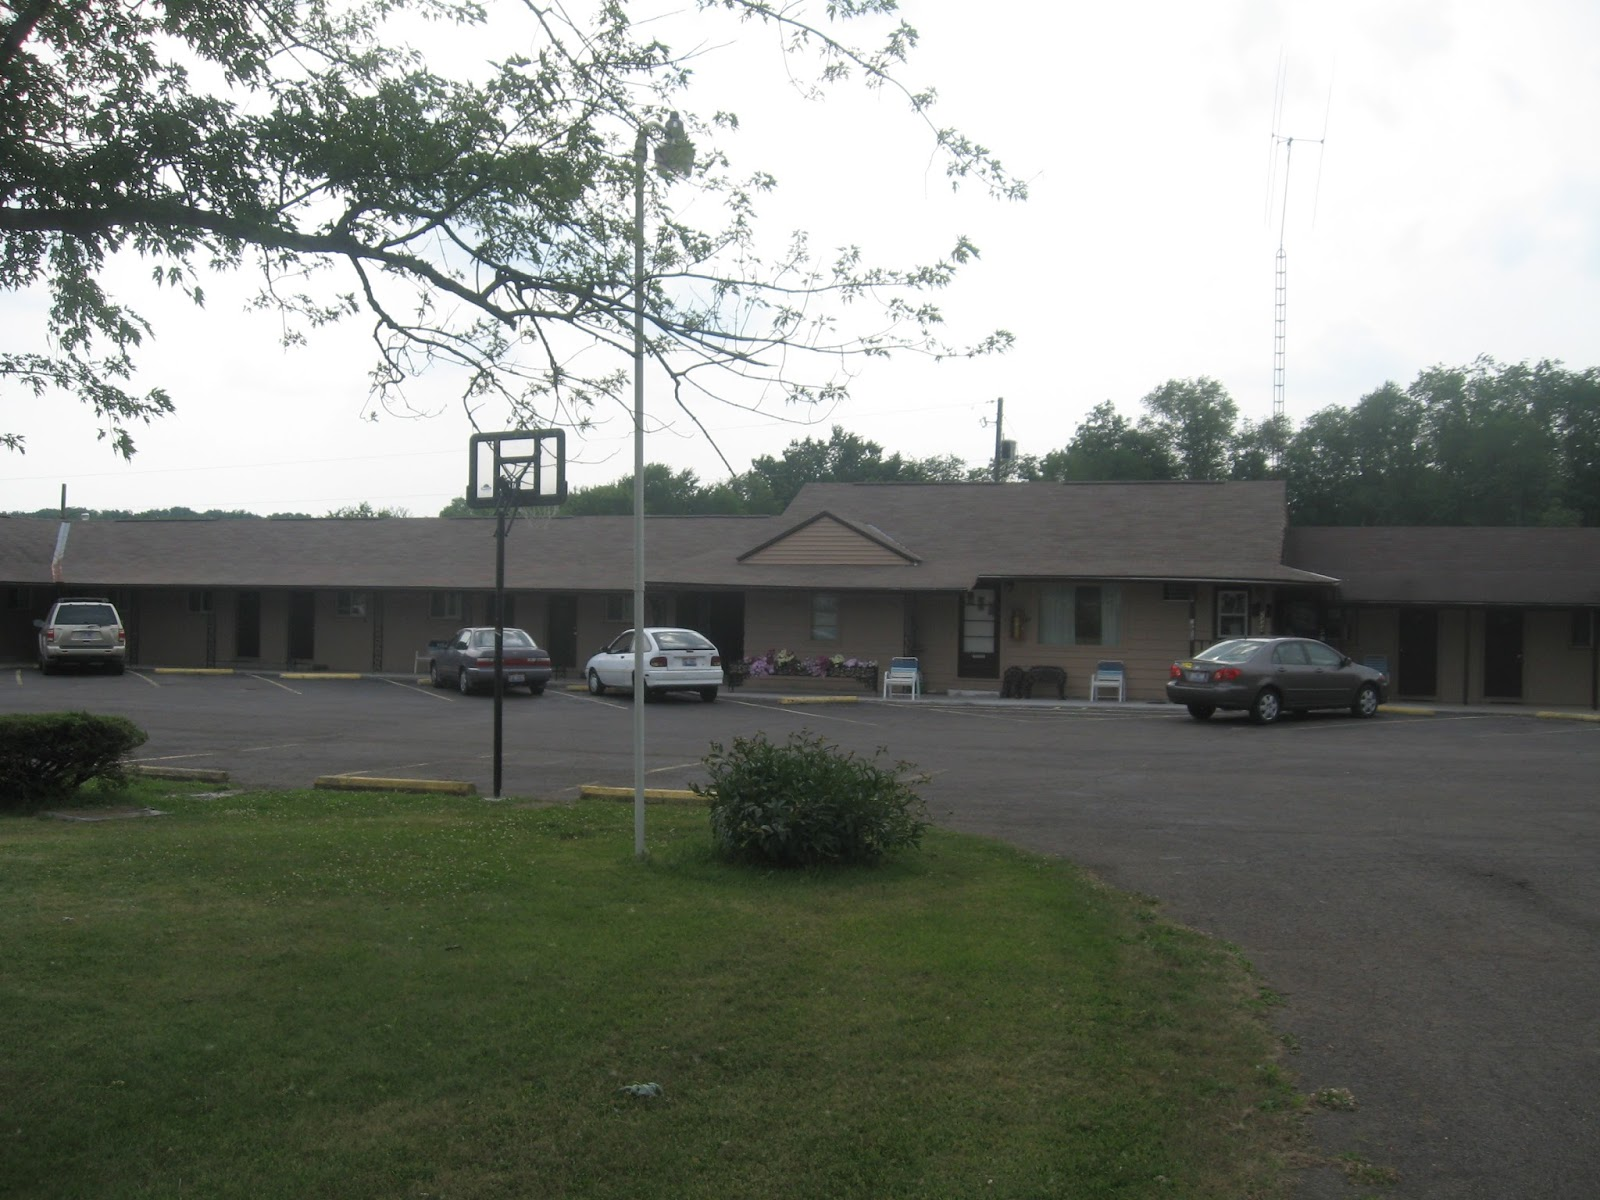 42 motel mansfield oh budget hotel weekly rate hotel. Black Bedroom Furniture Sets. Home Design Ideas